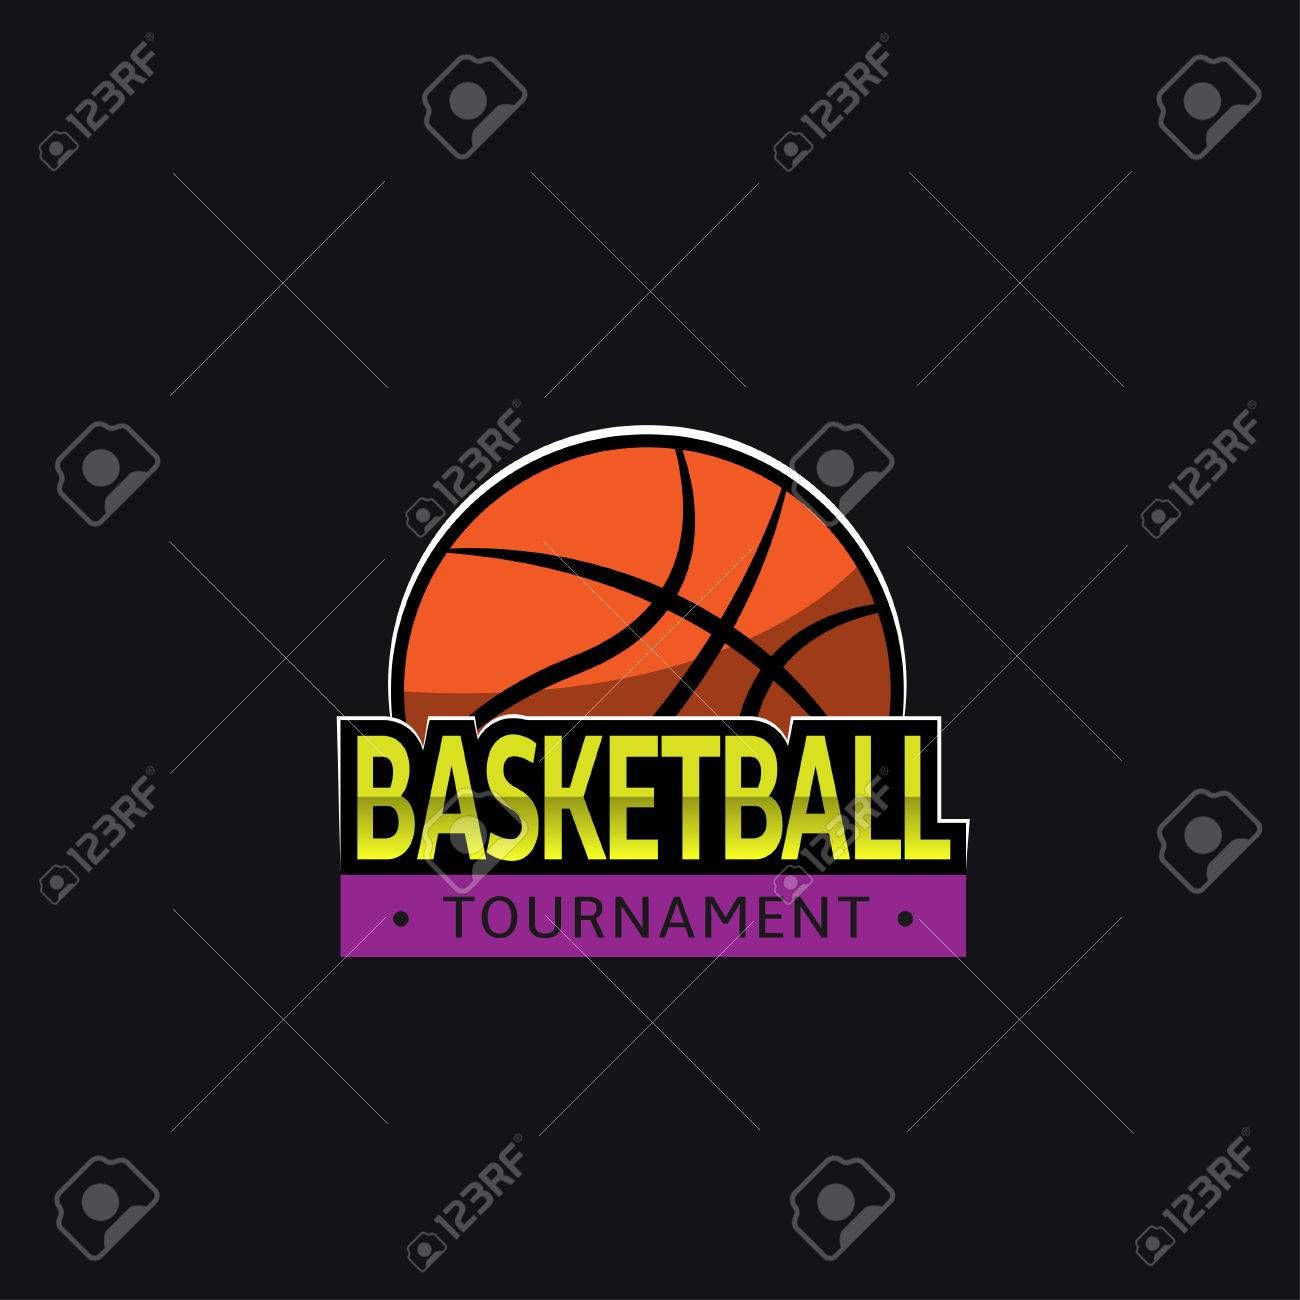 Basketball Tournament Logo Template Stock Photo, Picture And Royalty ...